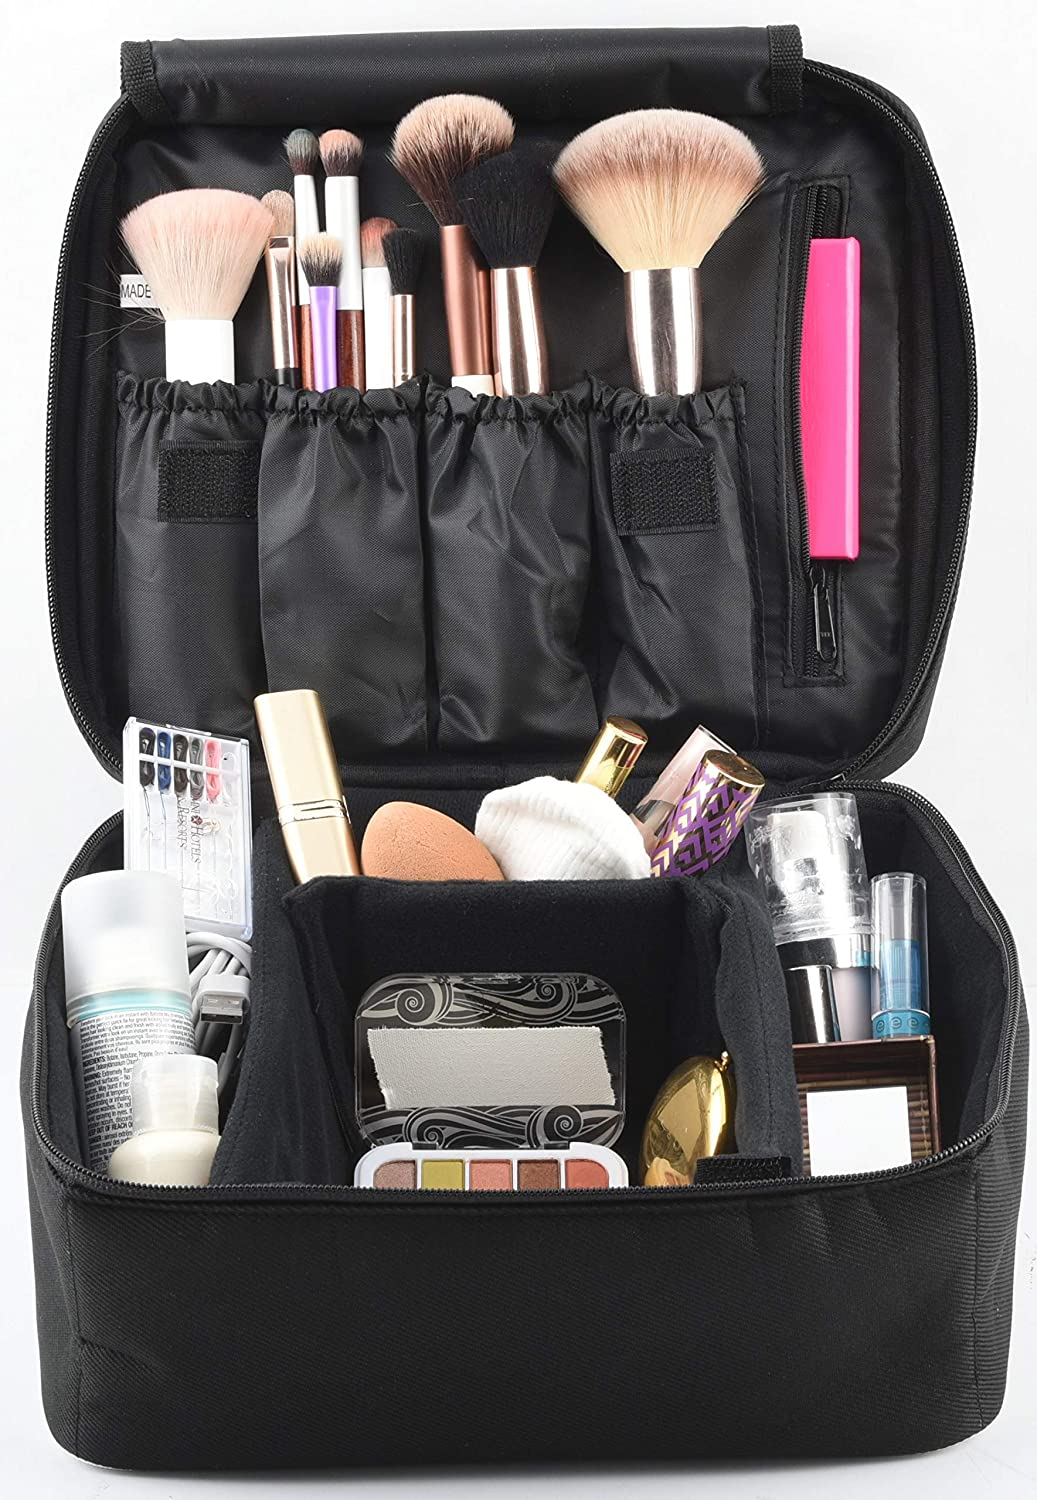 Amazon's Choice Makeup Organiz...